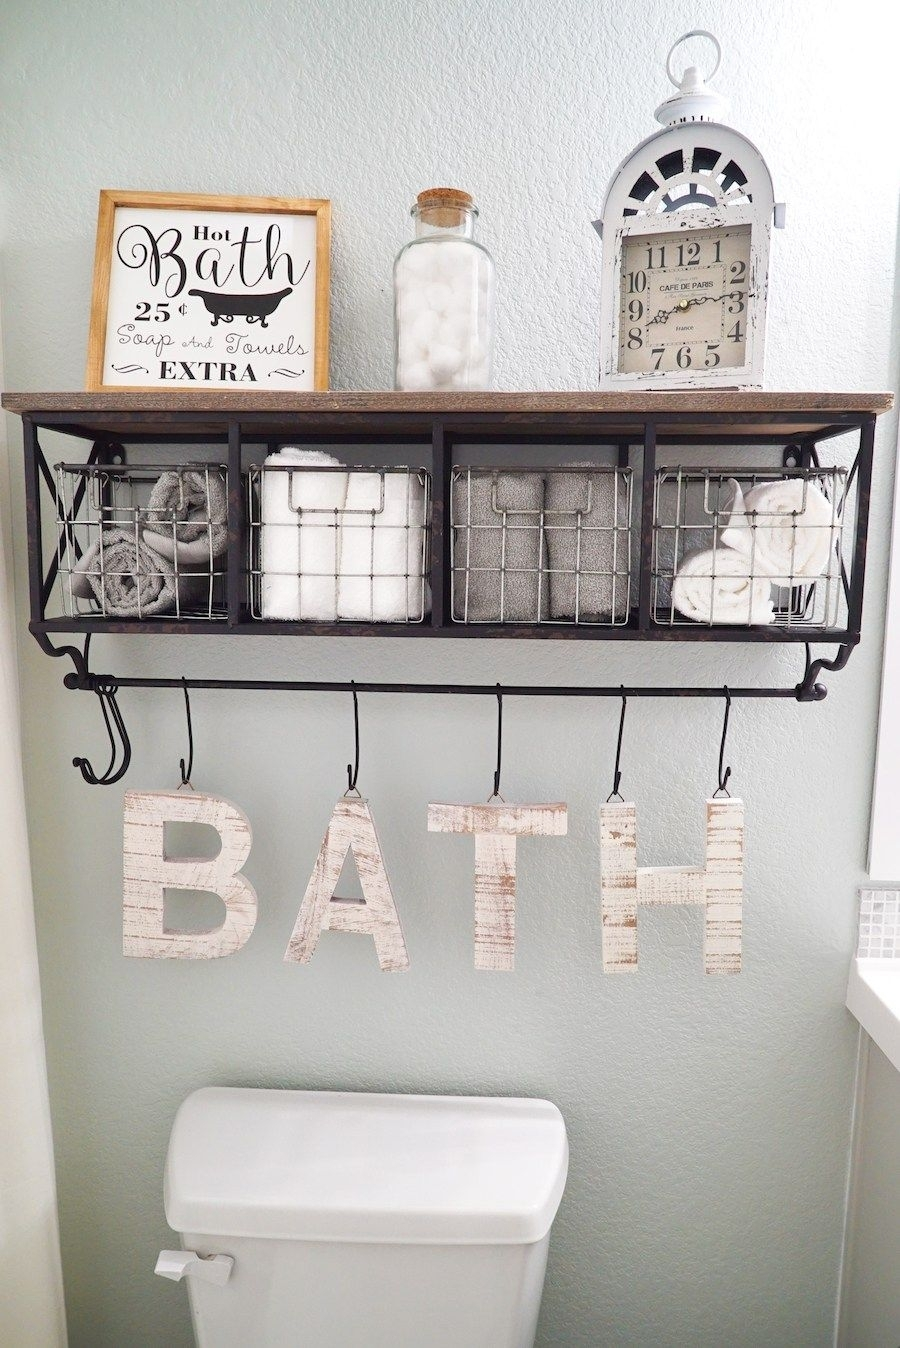 Full Bathroom Makeover With Floors And Paint | Sw Sea Salt, Wall with regard to Newest Wall Accents For Bathroom